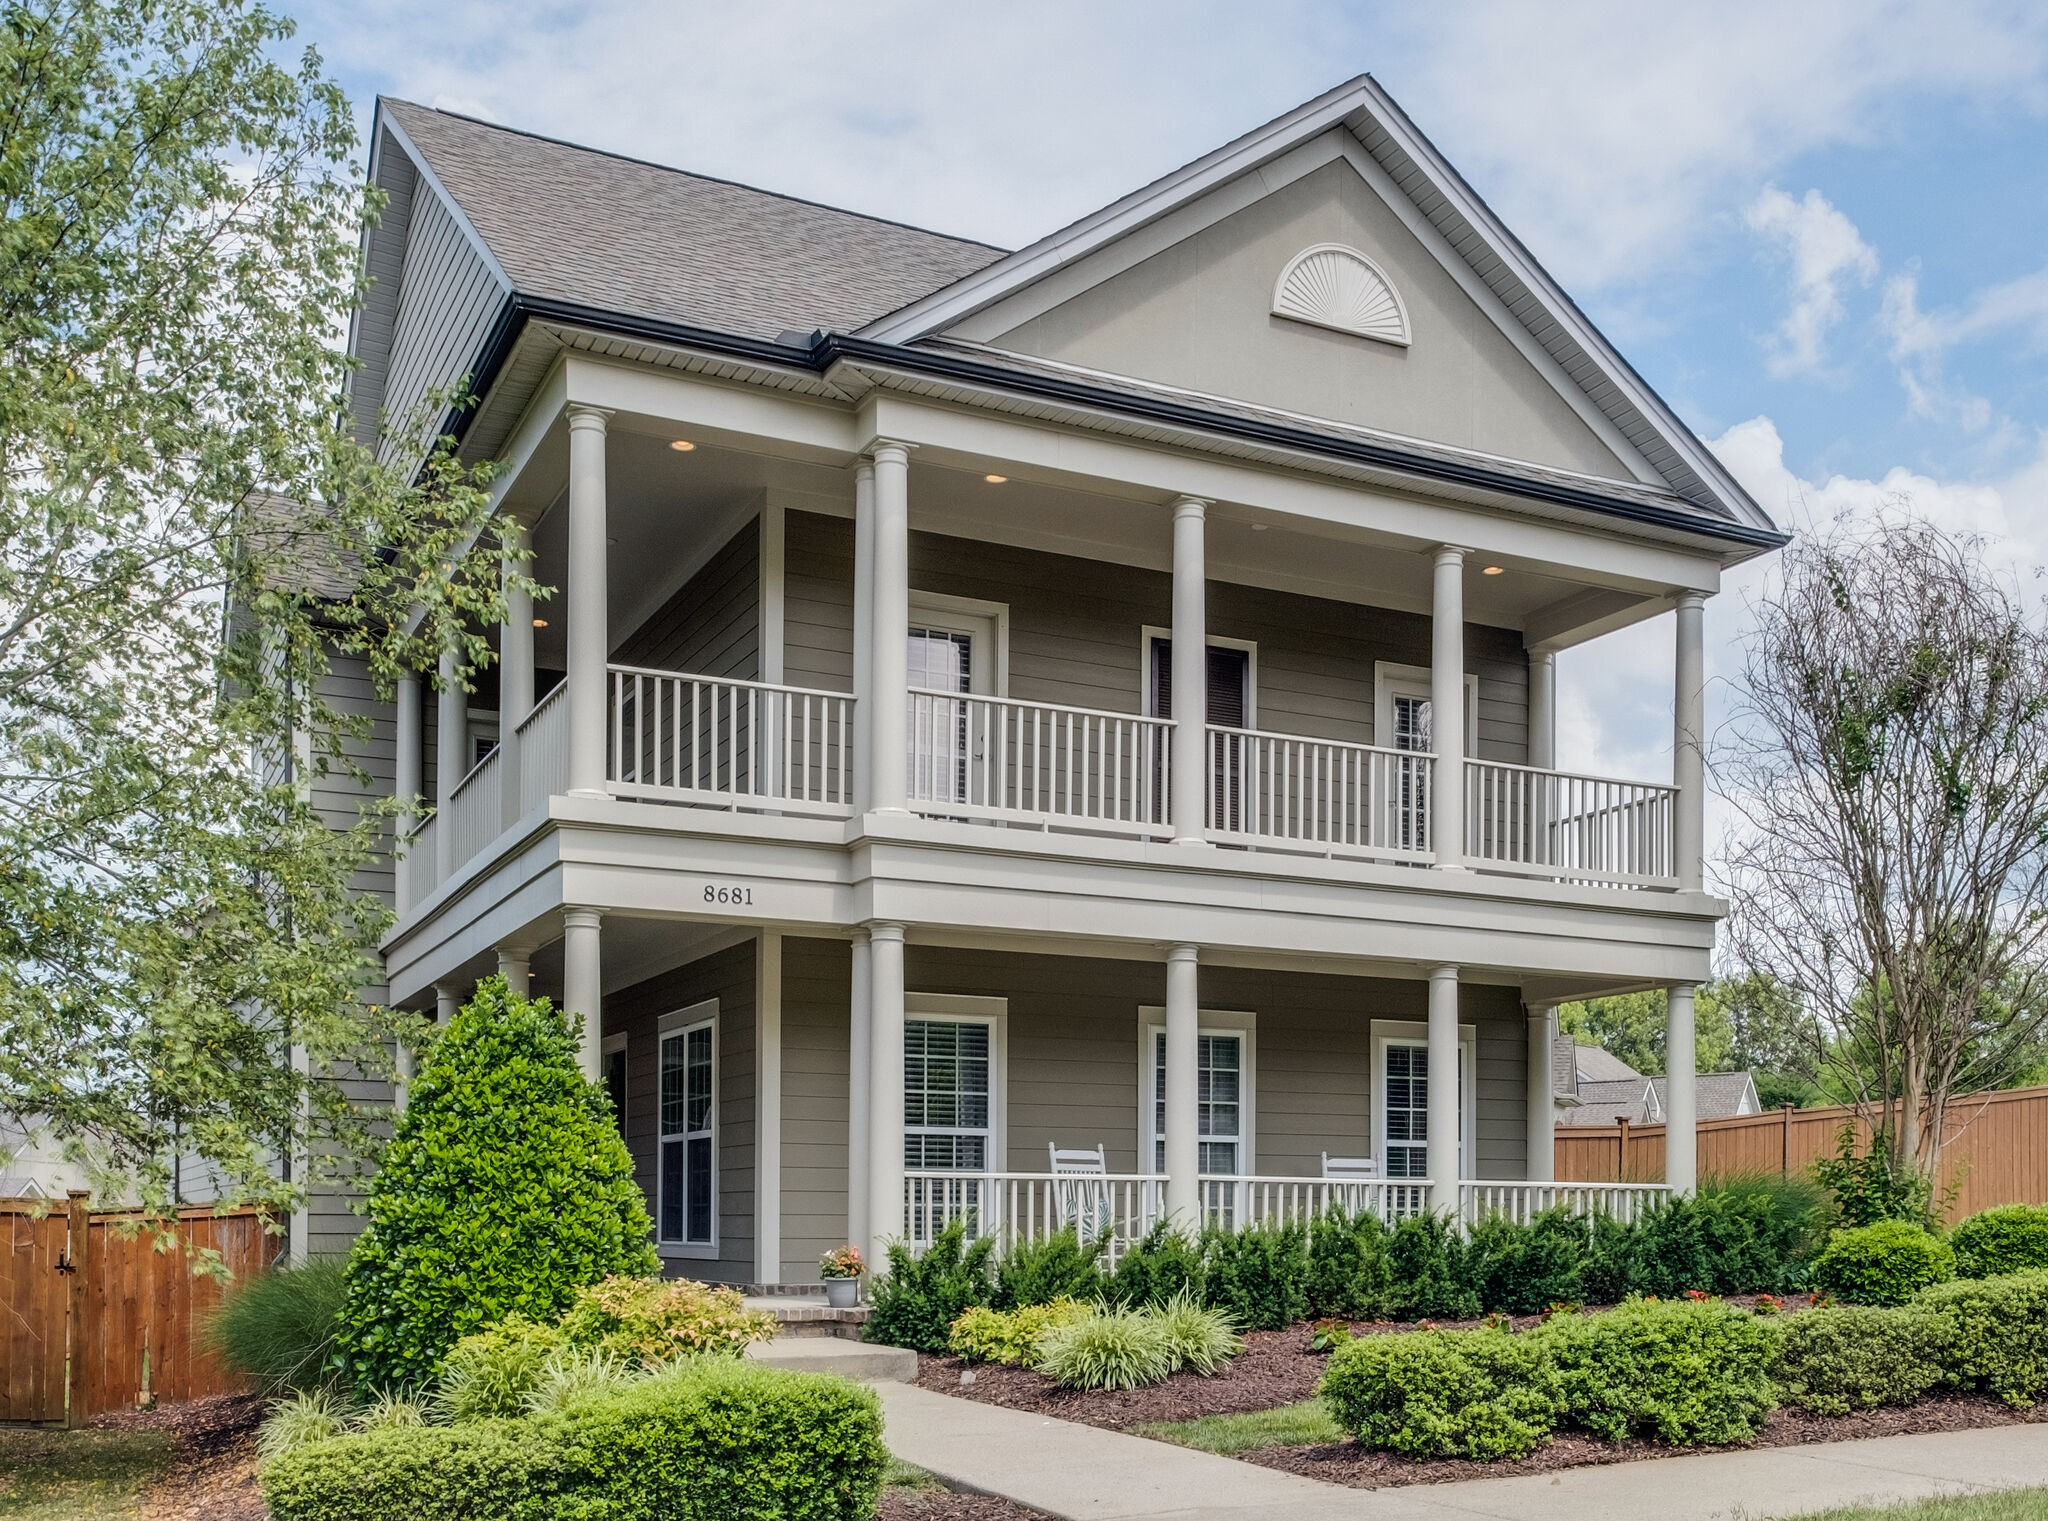 8681 Burkitt Place Dr Property Photo - Nolensville, TN real estate listing